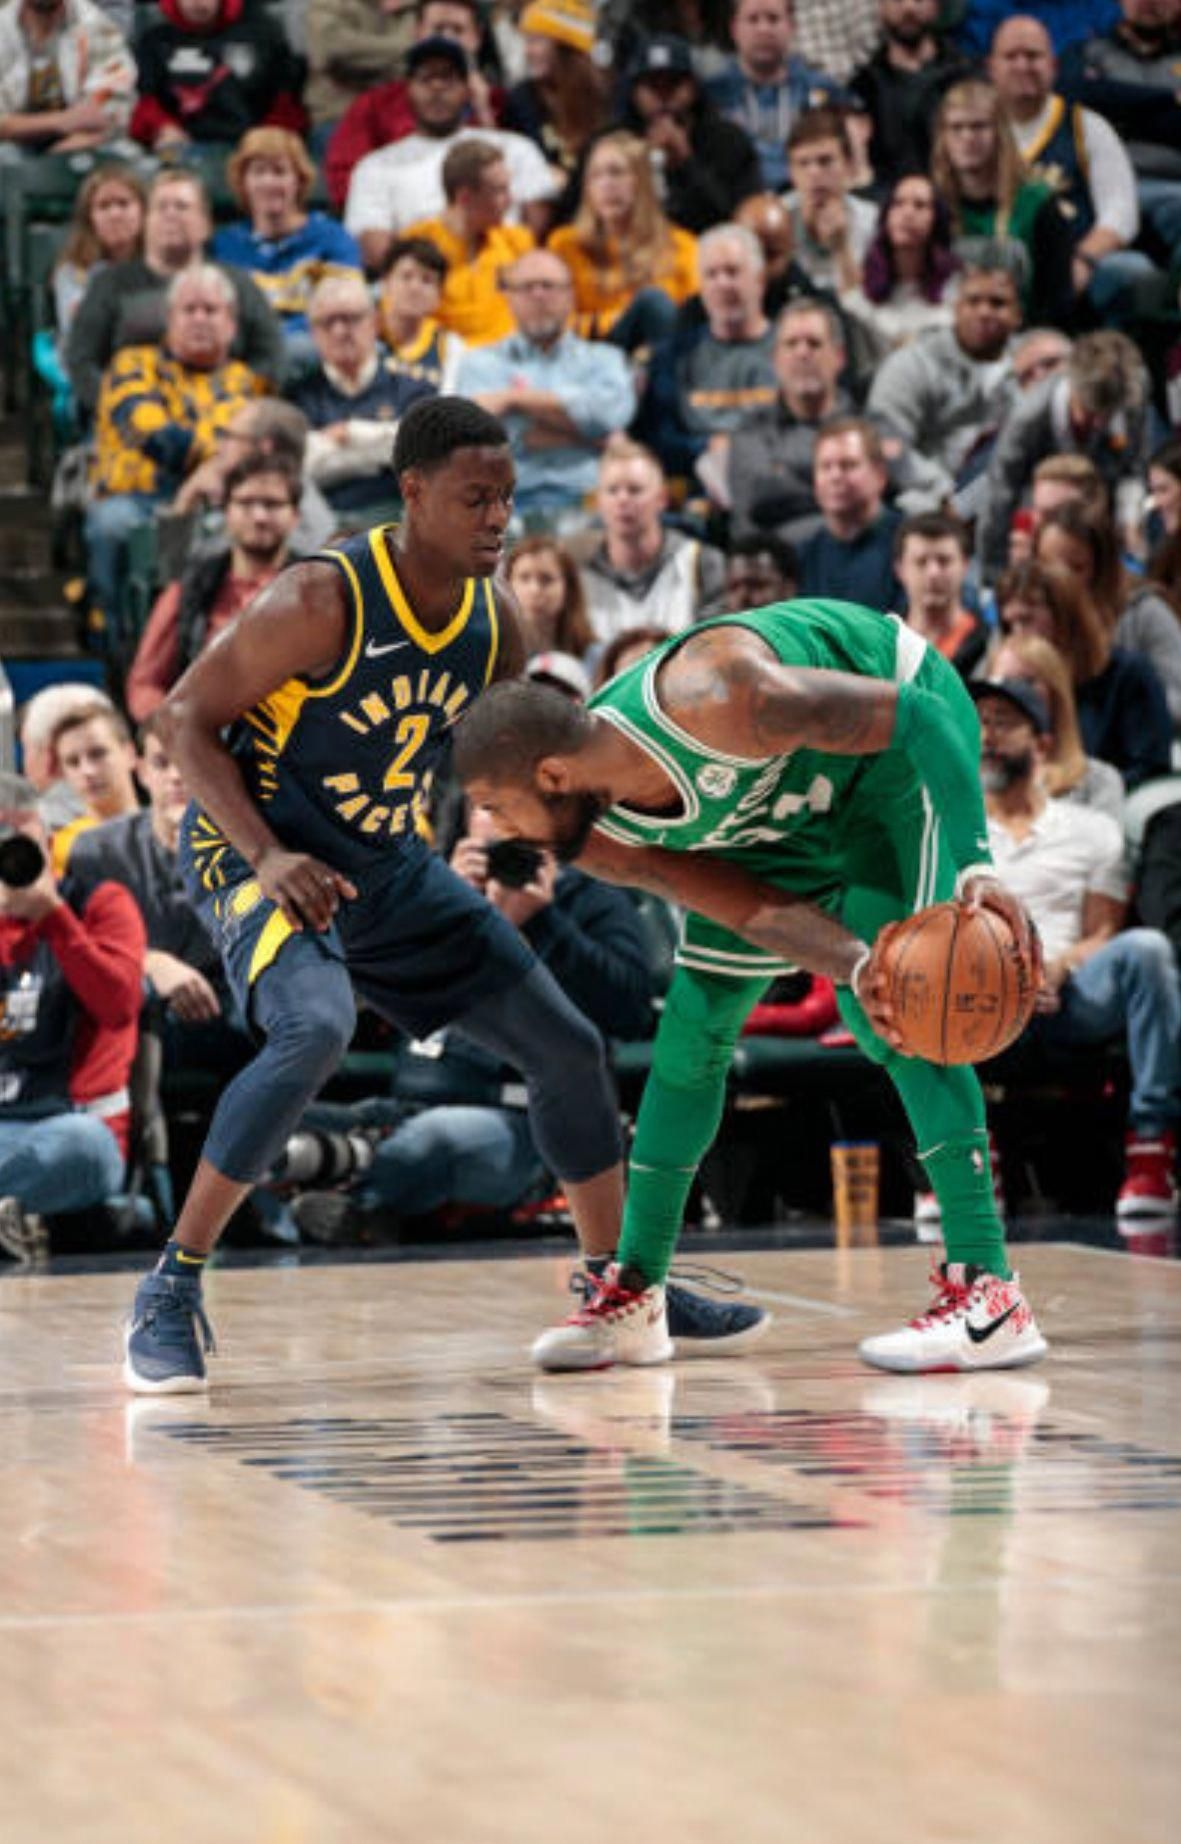 e4dc475941e At 10.2 seconds  KyrieIrving came in clutch converting a score of 107-111  to 110-111 with a 3 pt shot. THEN at 1.5 seconds Rozier stole the ball and  made a ...